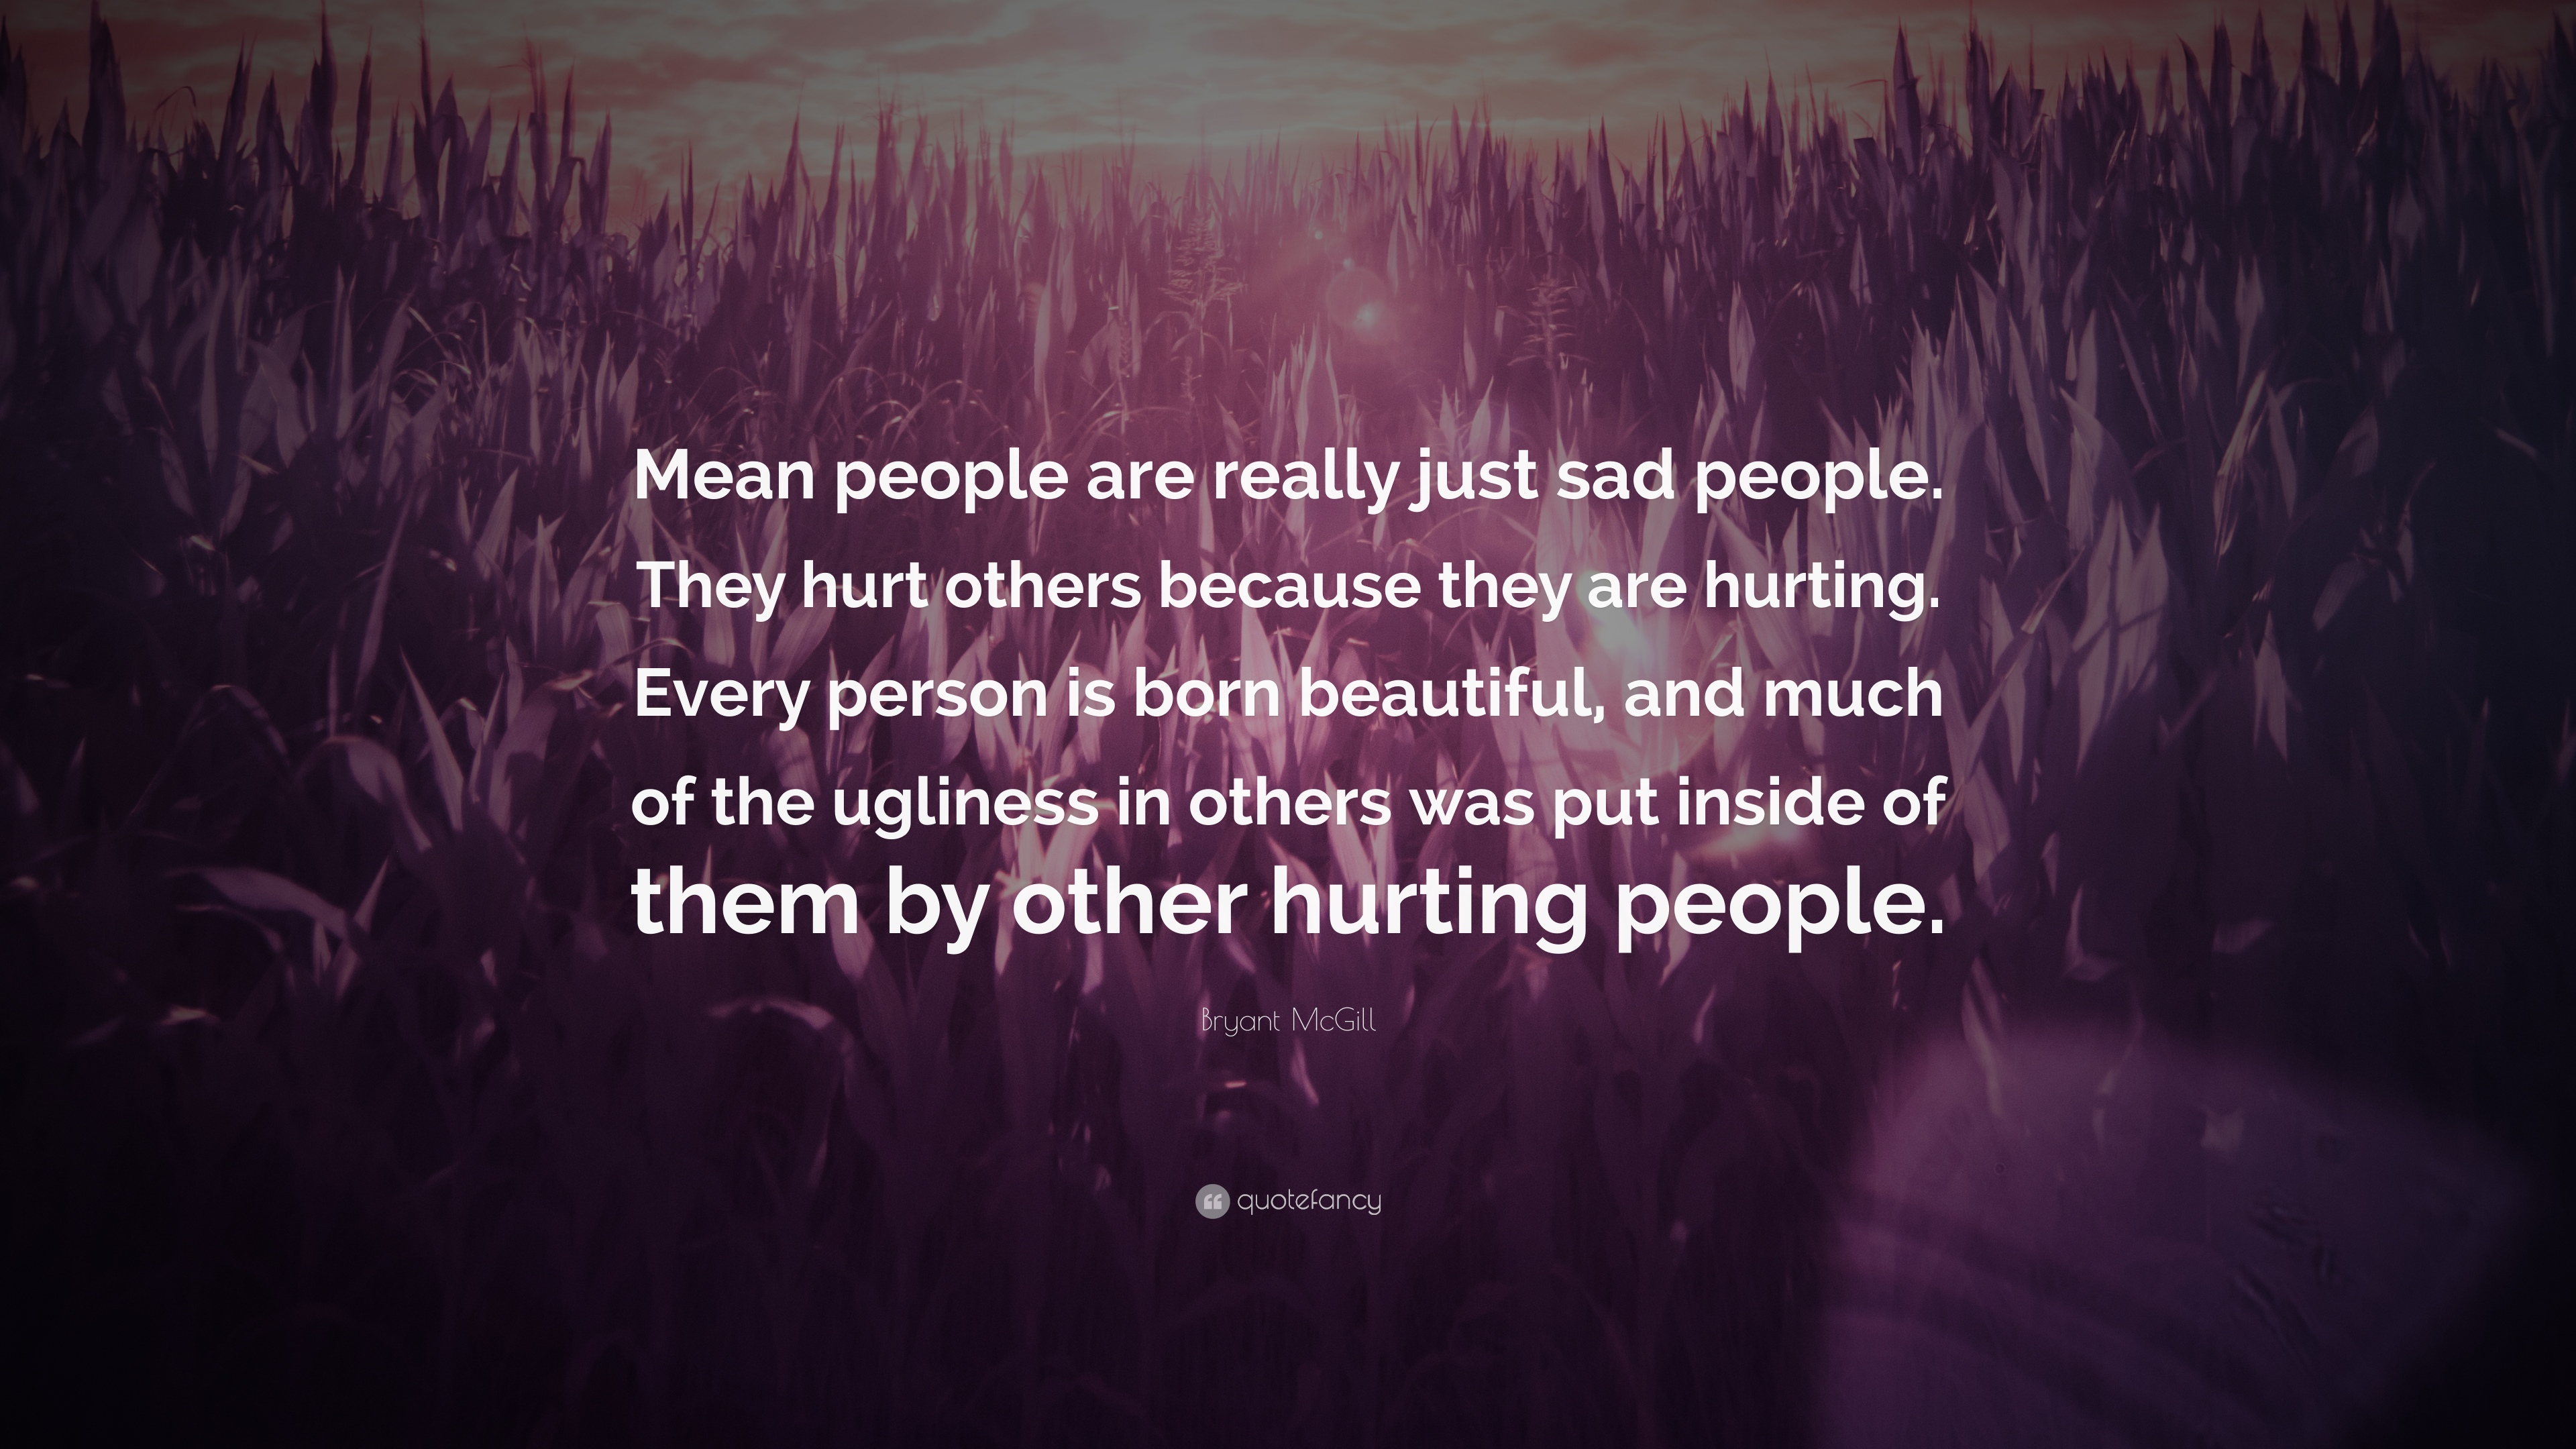 Luxury Quotes For Mean People - Allquotesideas